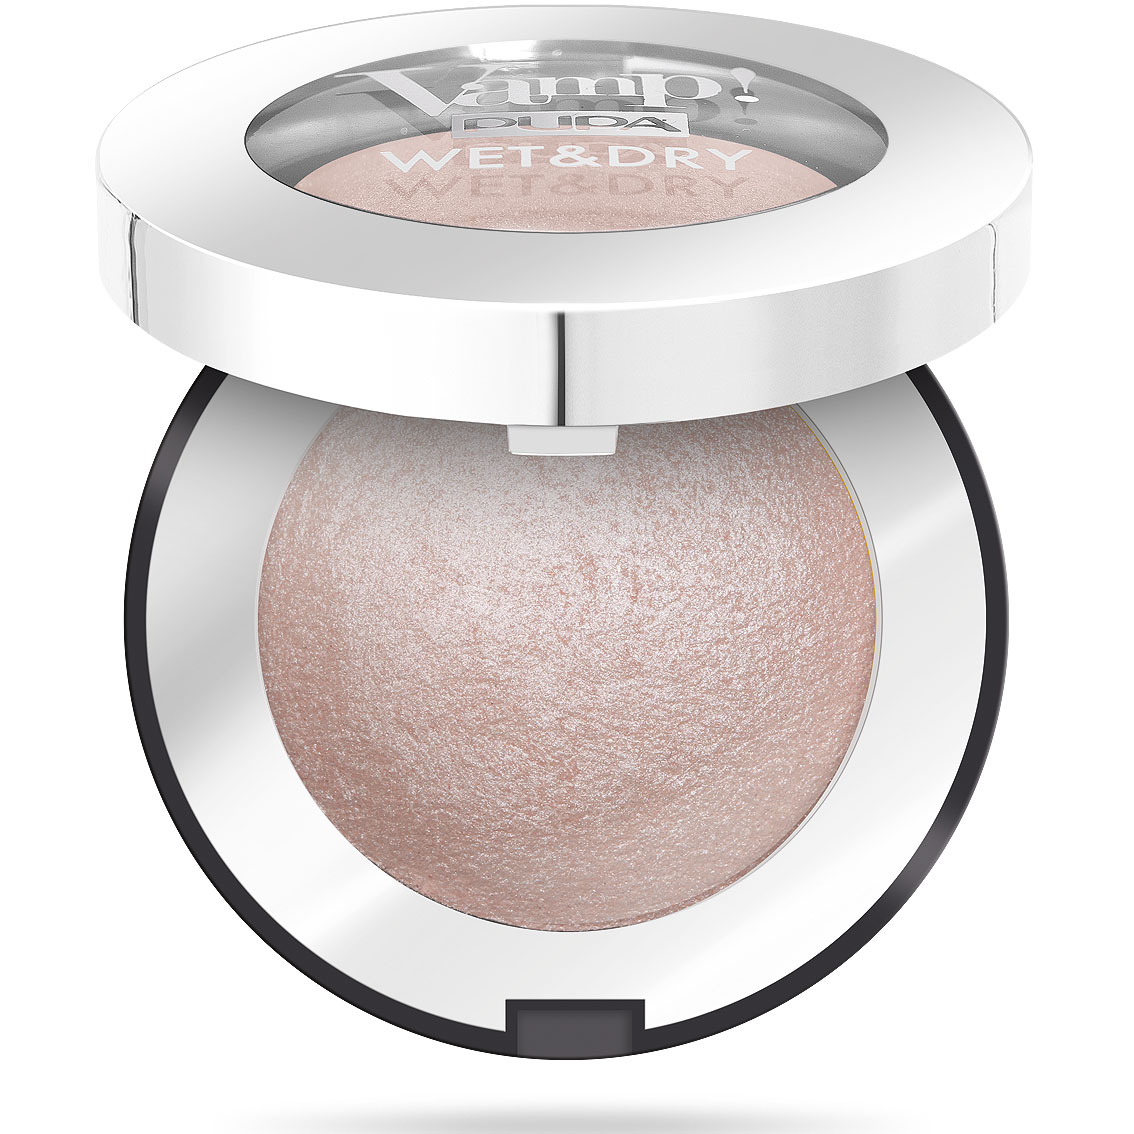 Pupa Vamp! Wet & Dry Ombretto n. 200 luminous rose